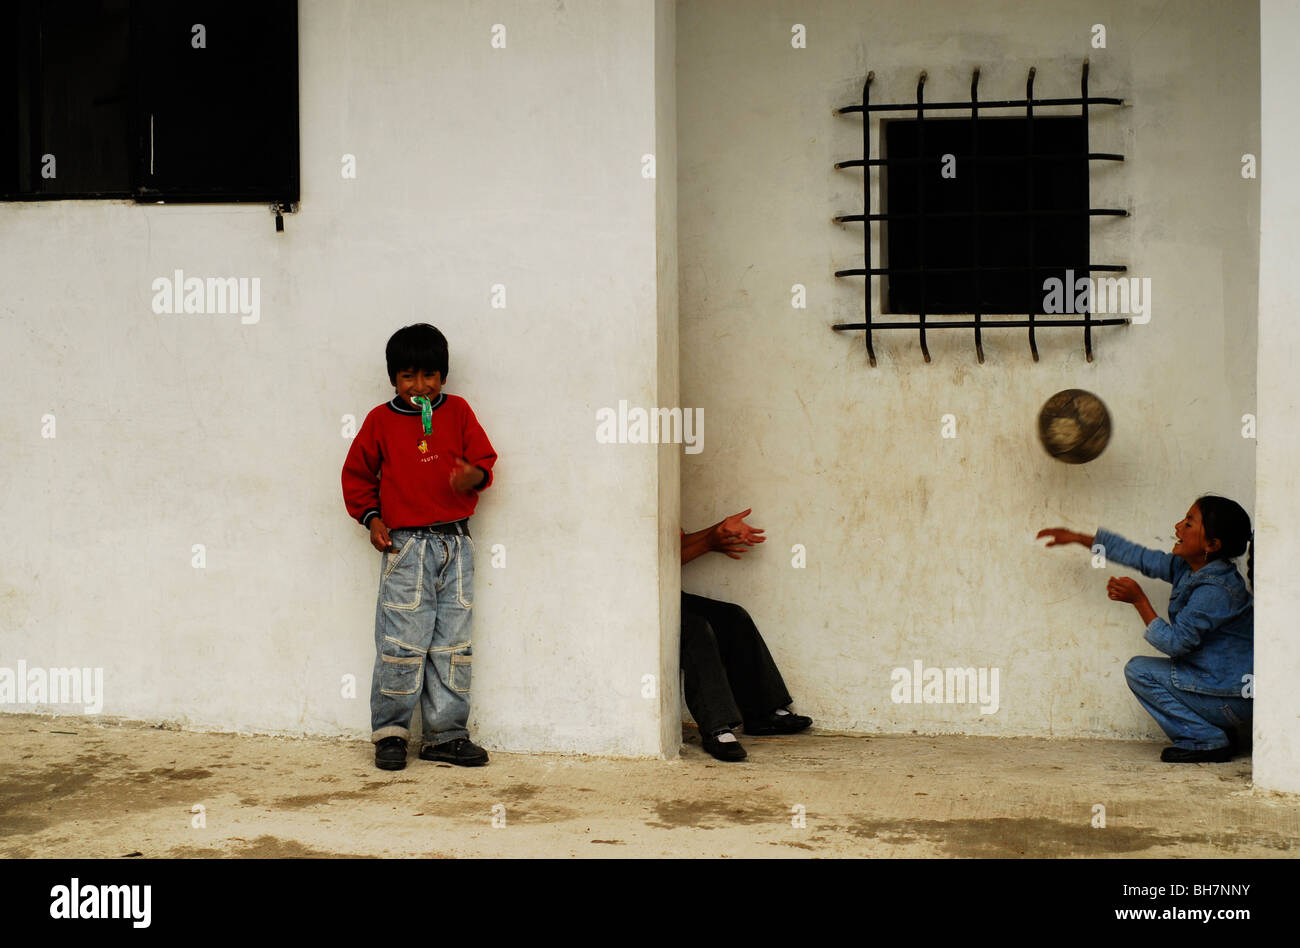 Ecuador, Latacunga, children playing with ball by a wall Stock Photo